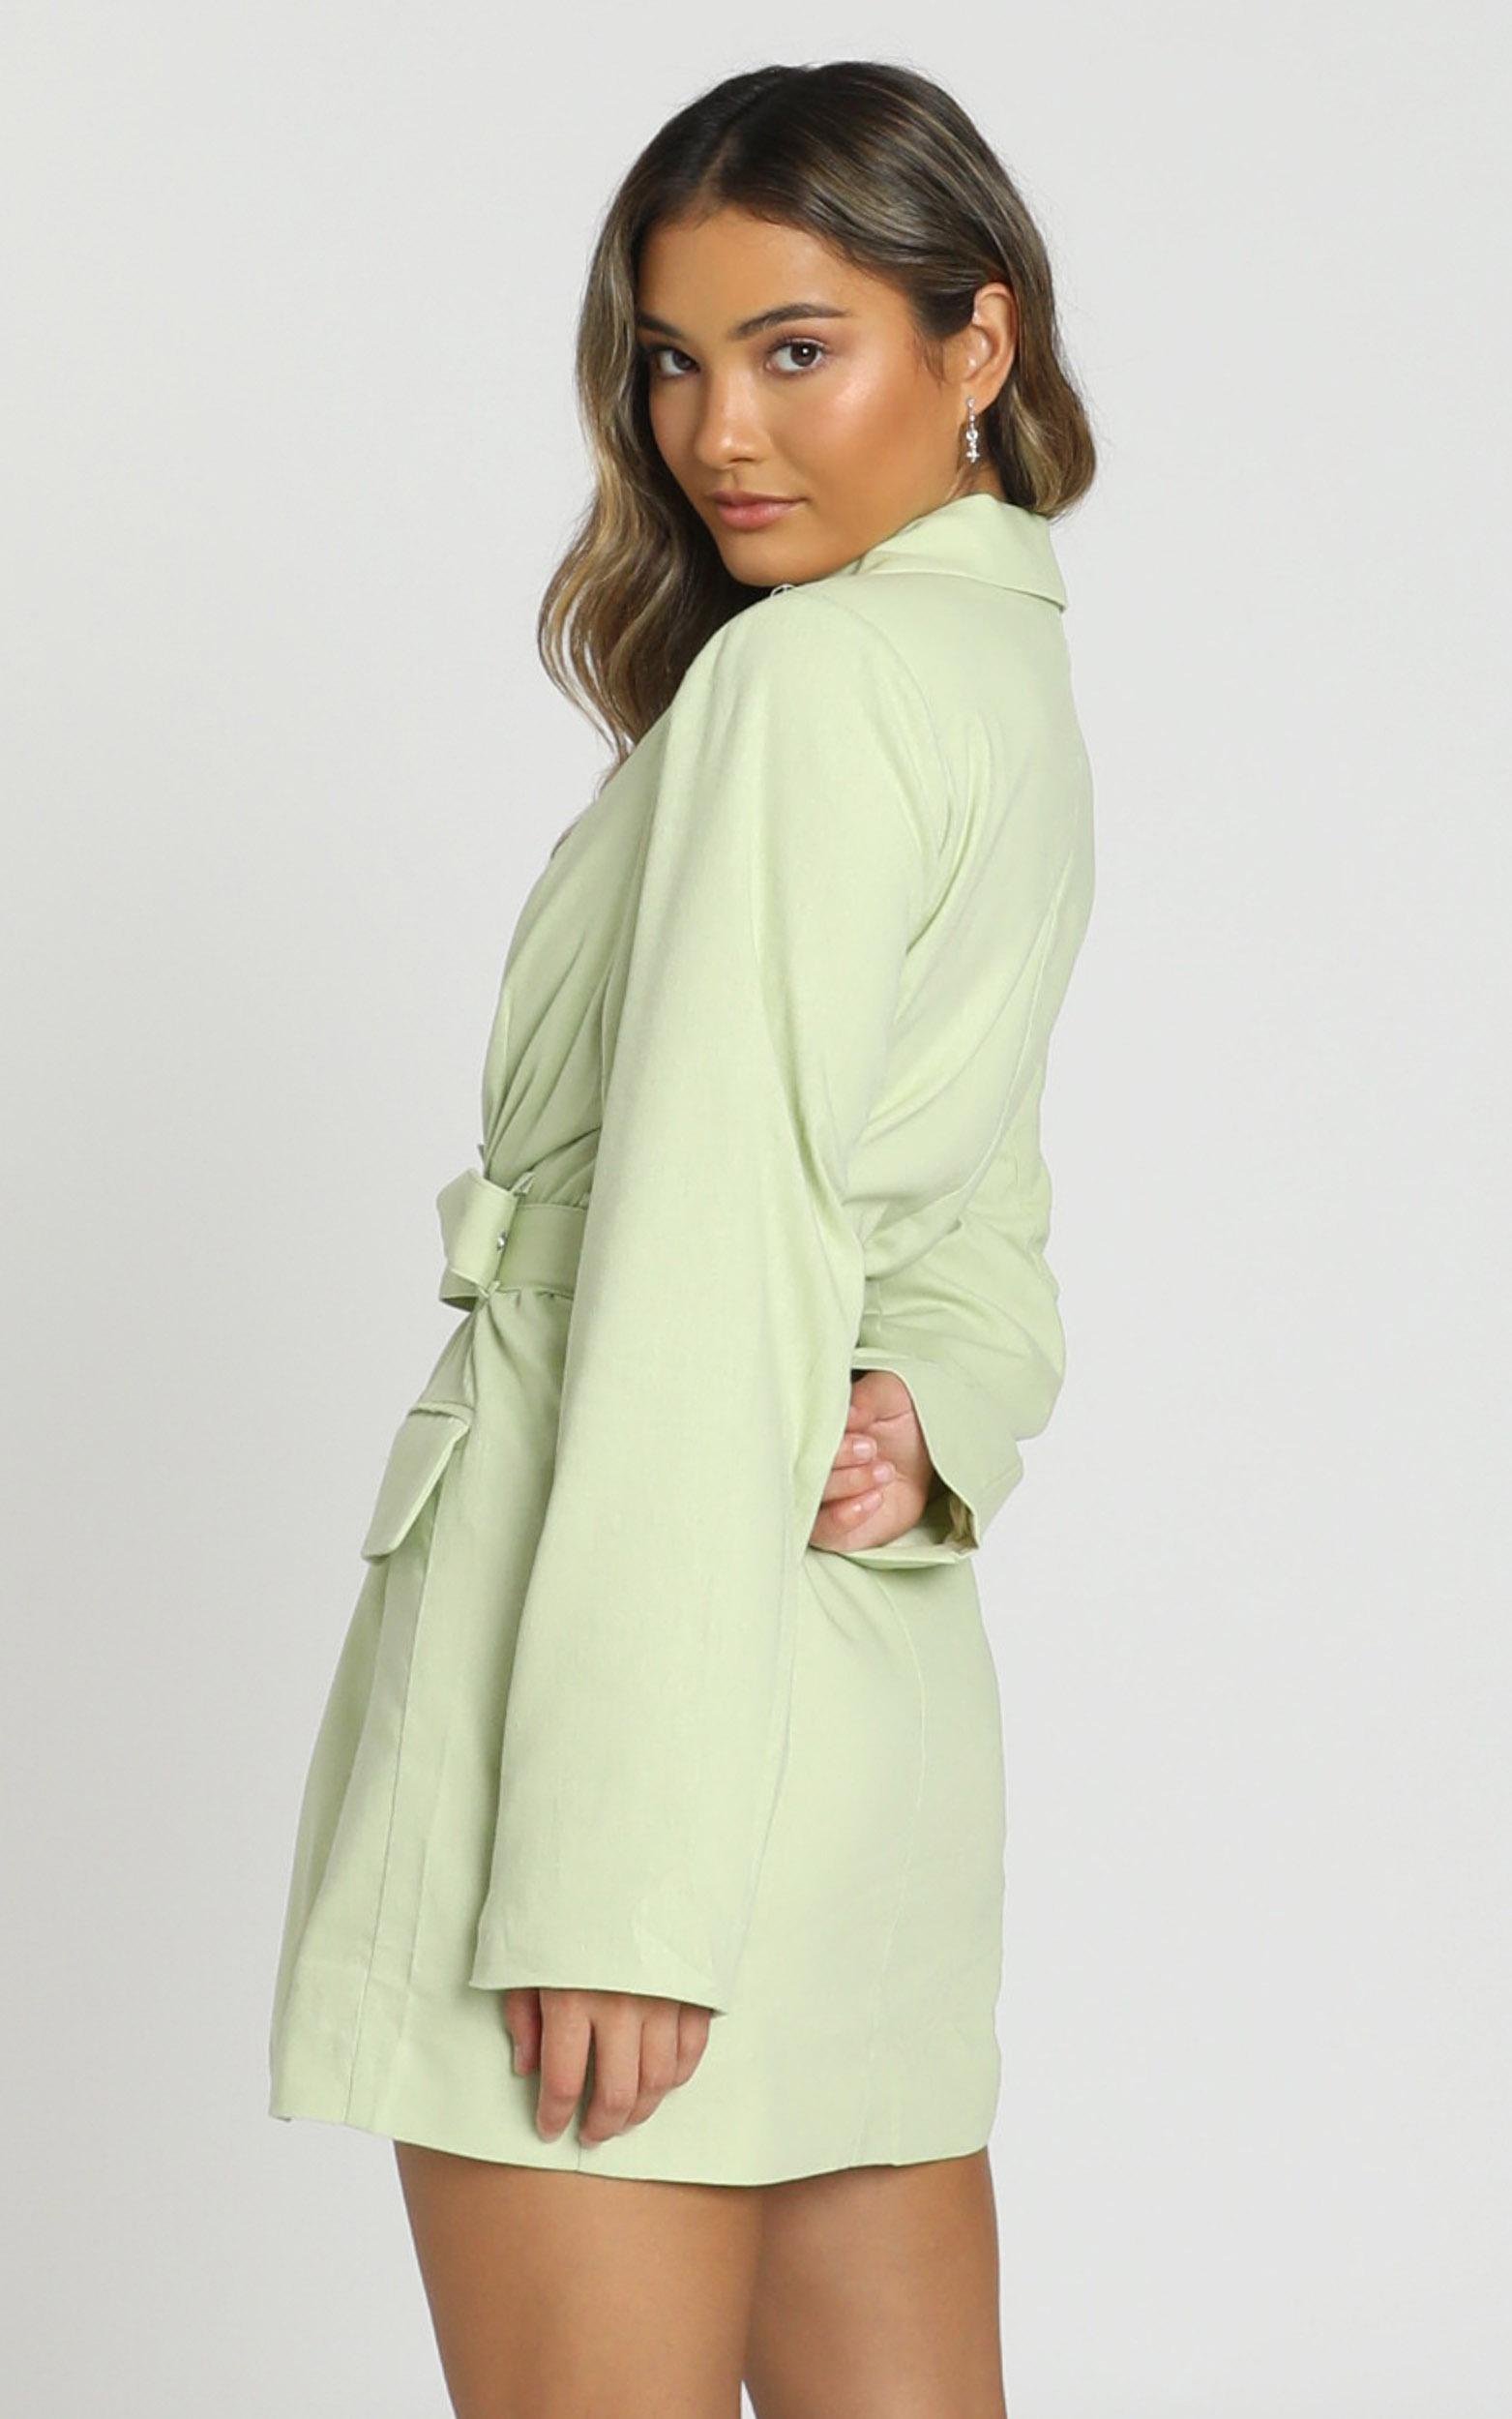 Babette Dress in lime - 8 (S), Green, hi-res image number null